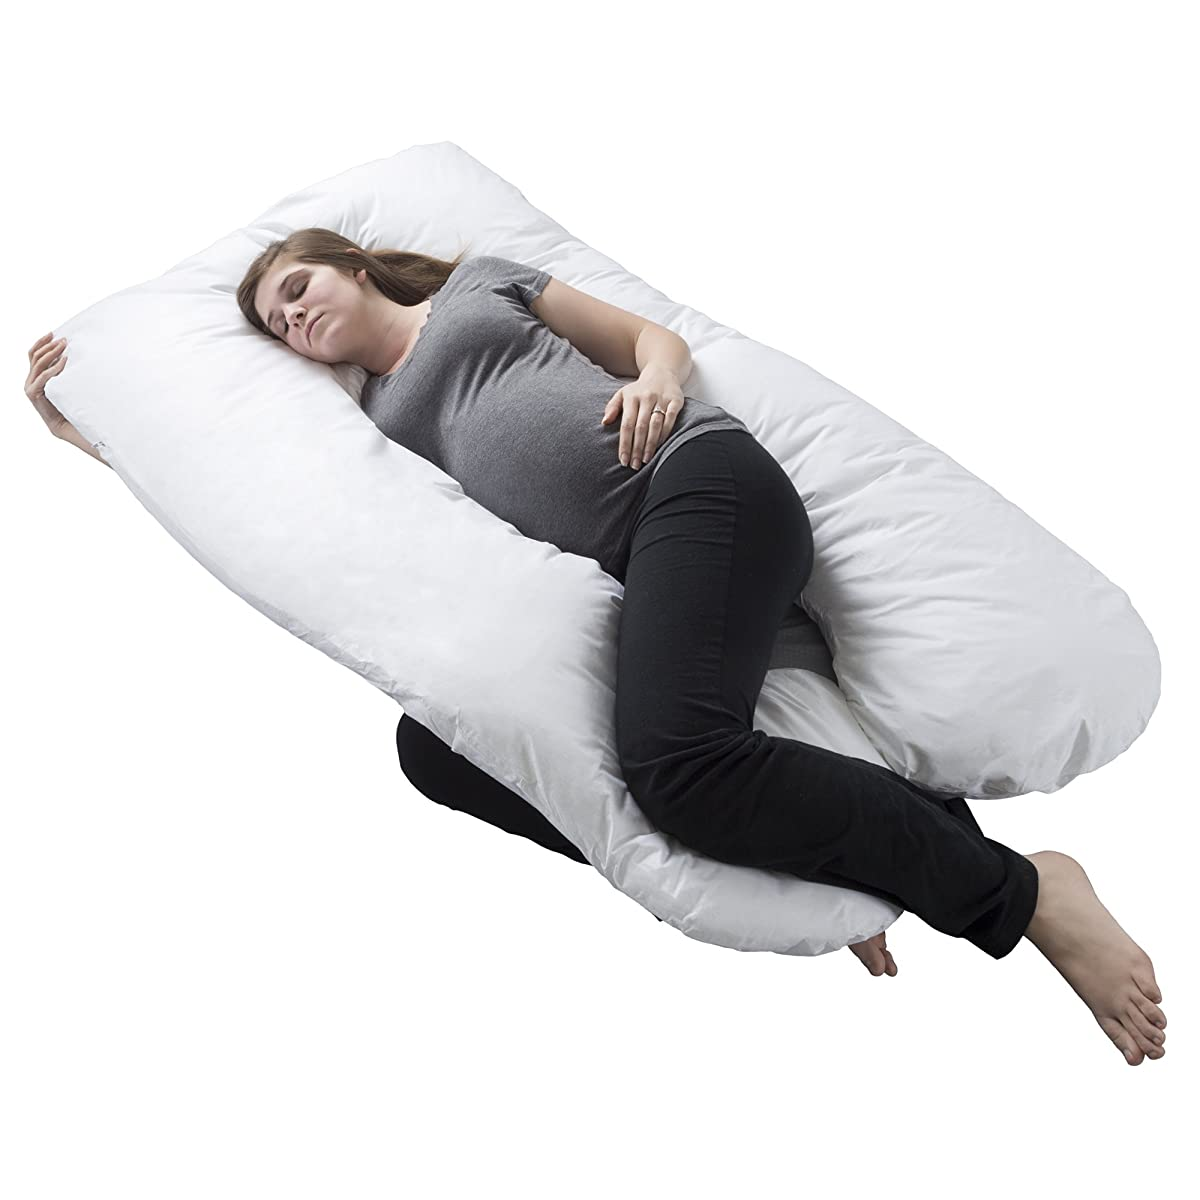 Pregnancy Pillow, Full Body Maternity Pillow w/ Contoured U-Shape by Lavish Home, Back Support